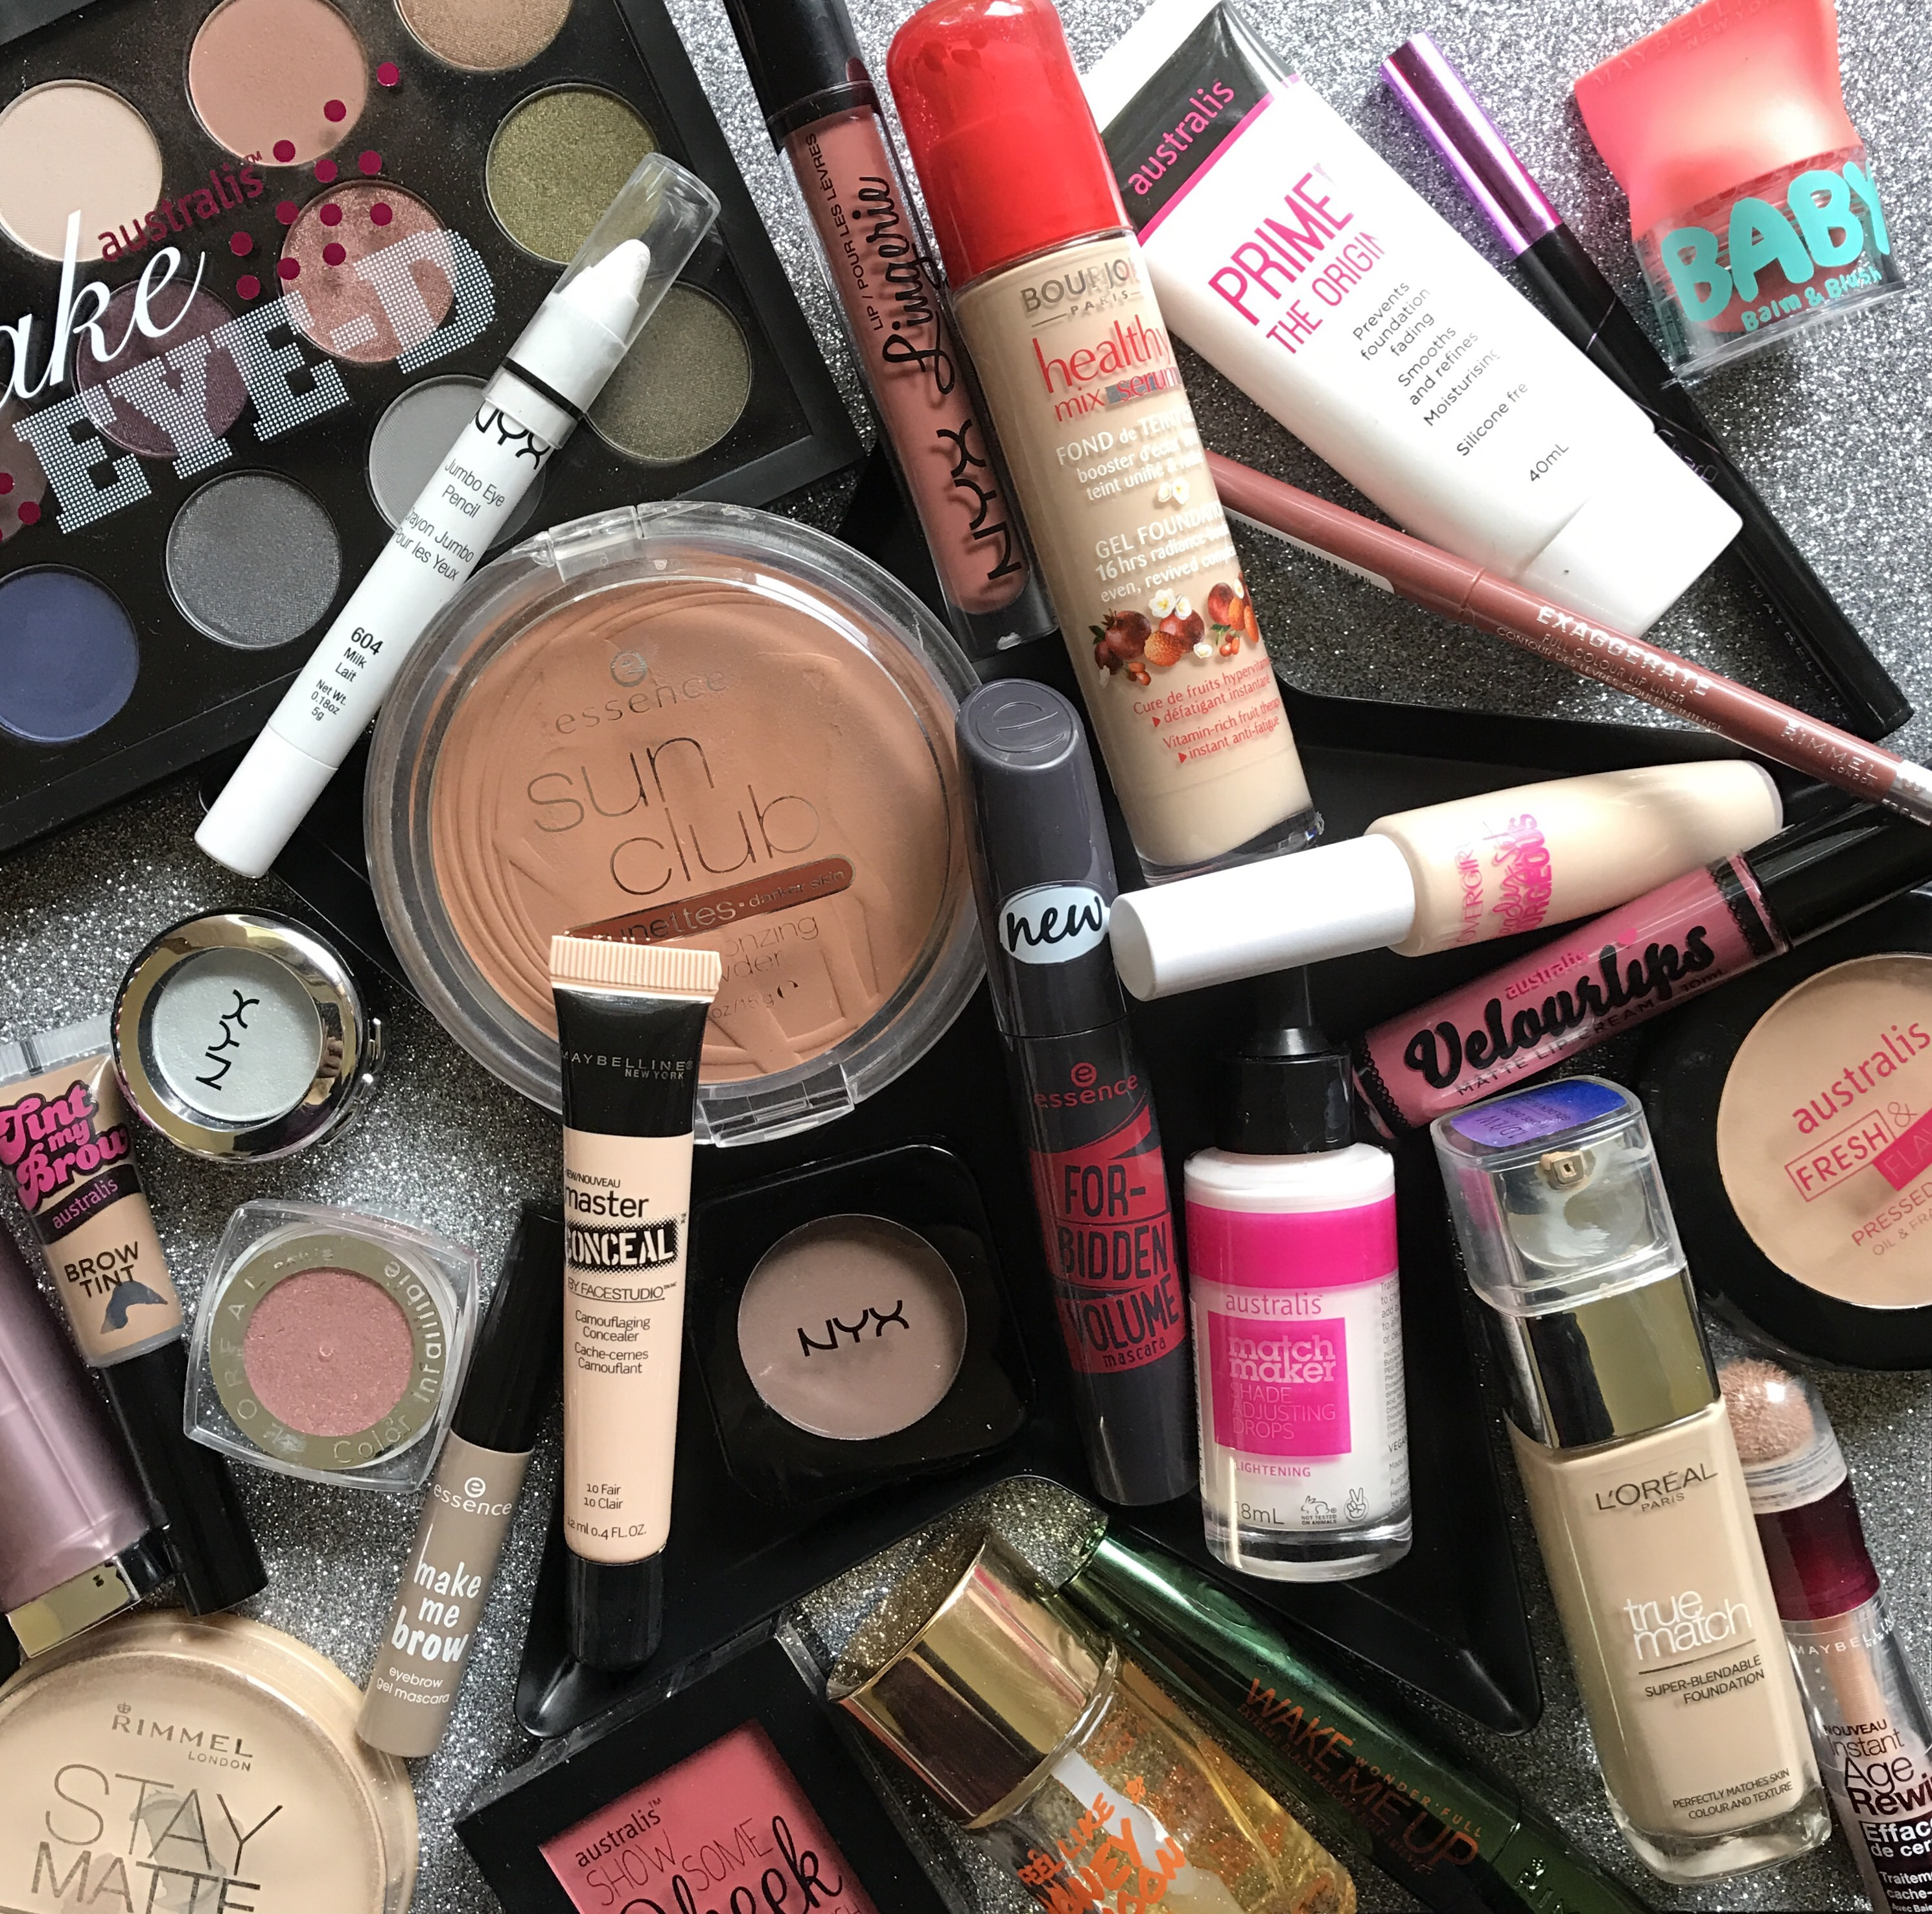 cd3ffbd076b ... I thought I'd give all of you who are thinking about going to the sale  some of my recommendations and products I can't live without from Priceline.